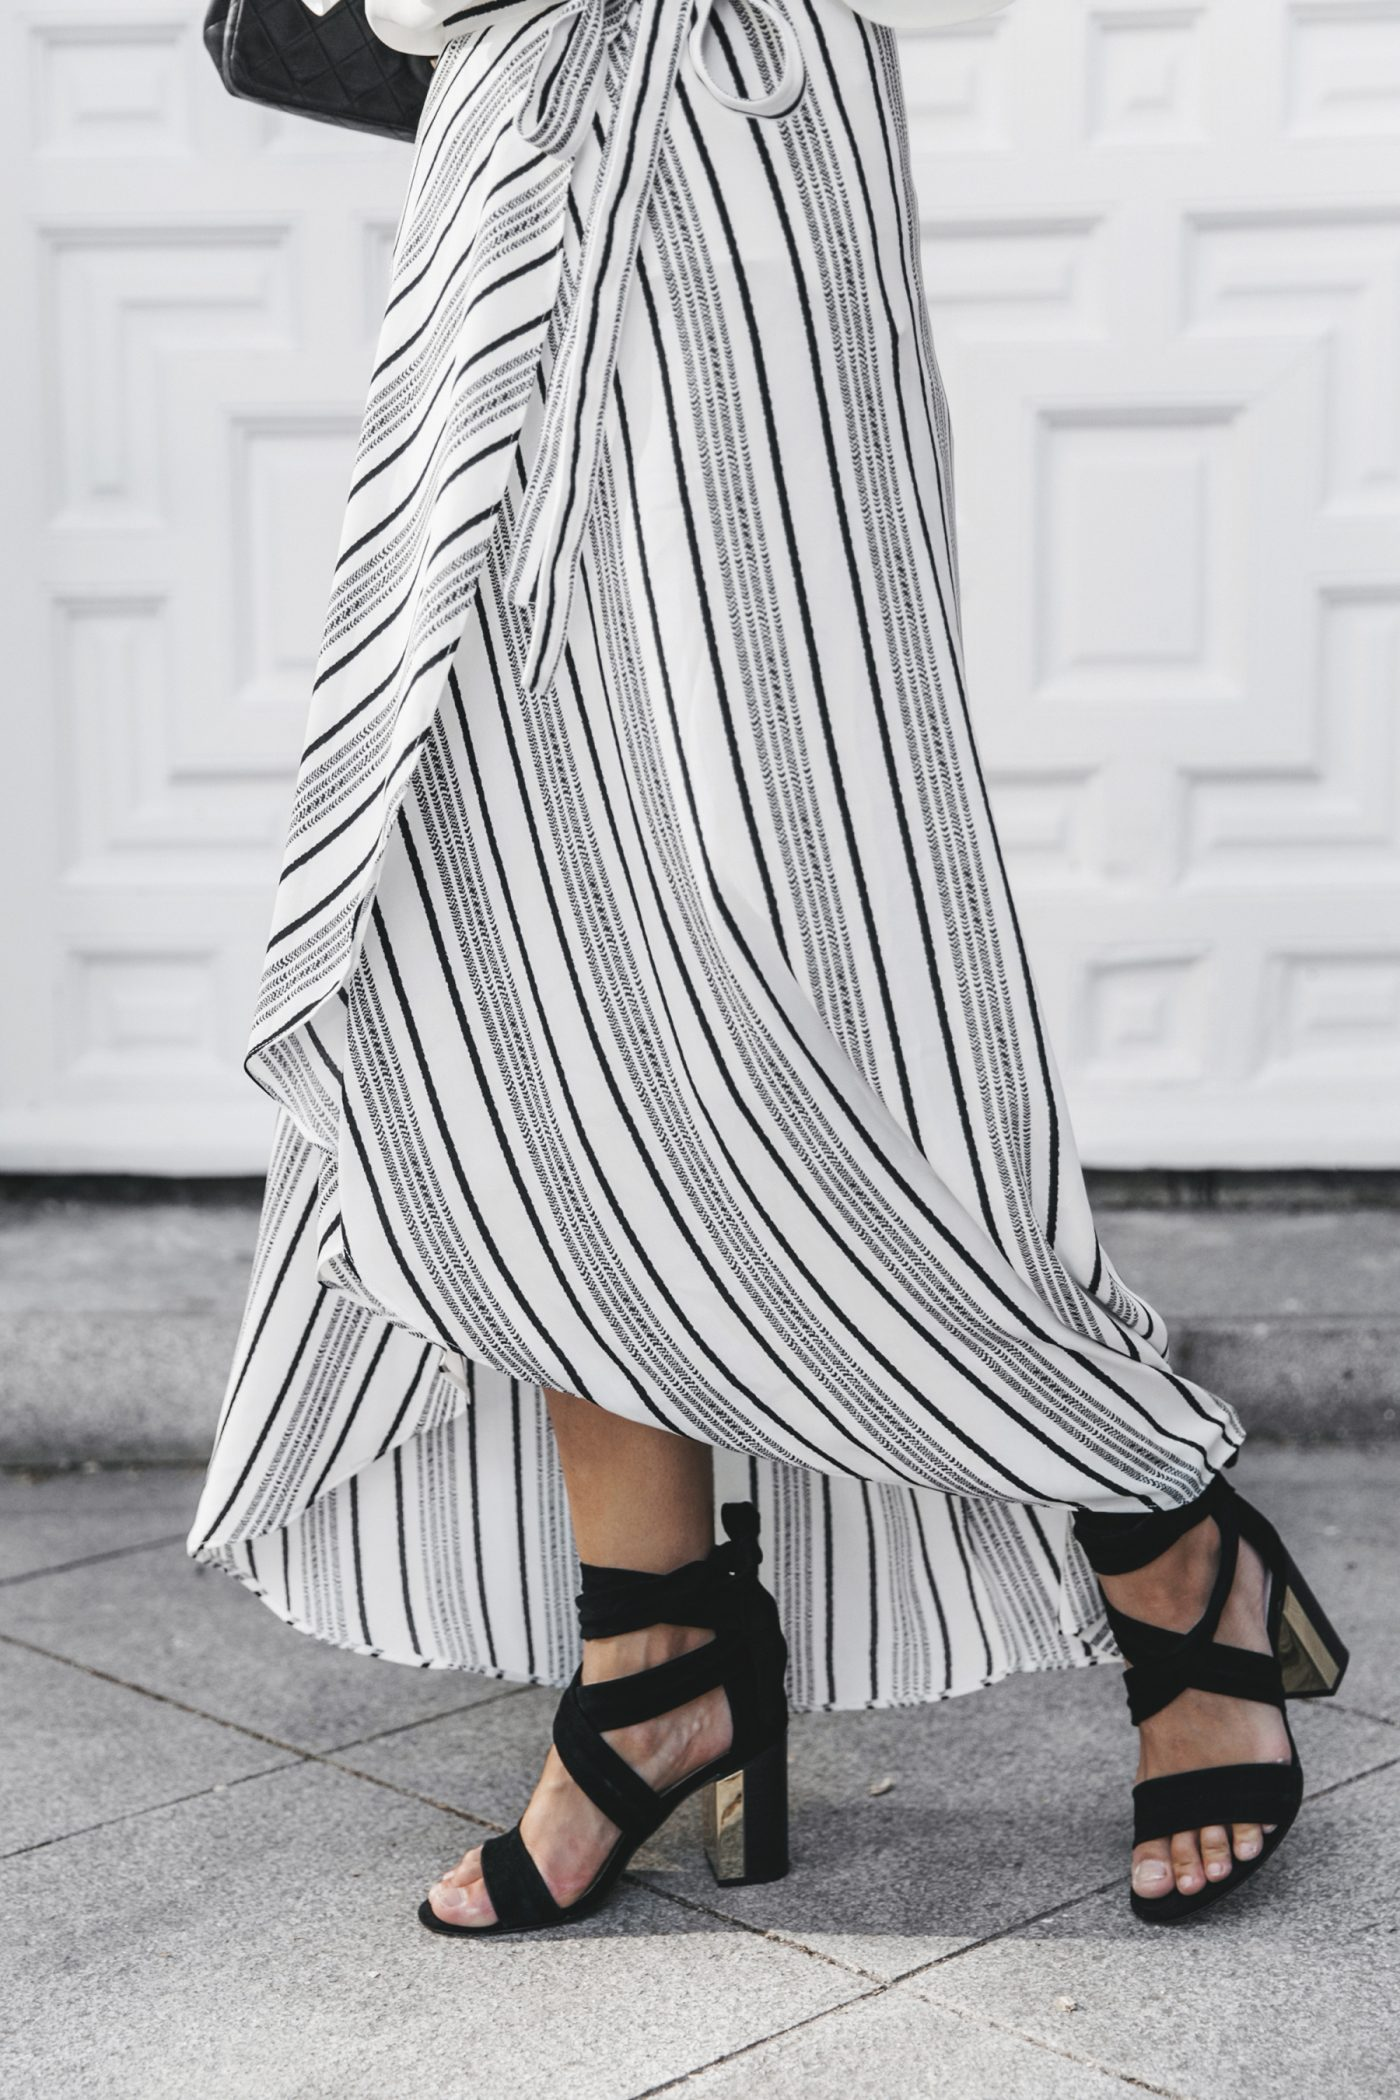 River_Island-El_Imparcial-Striped_SKirt-Off_Shoulders_Top-Lace_Up_Sandals-CHanel_Vintage_Bag-24